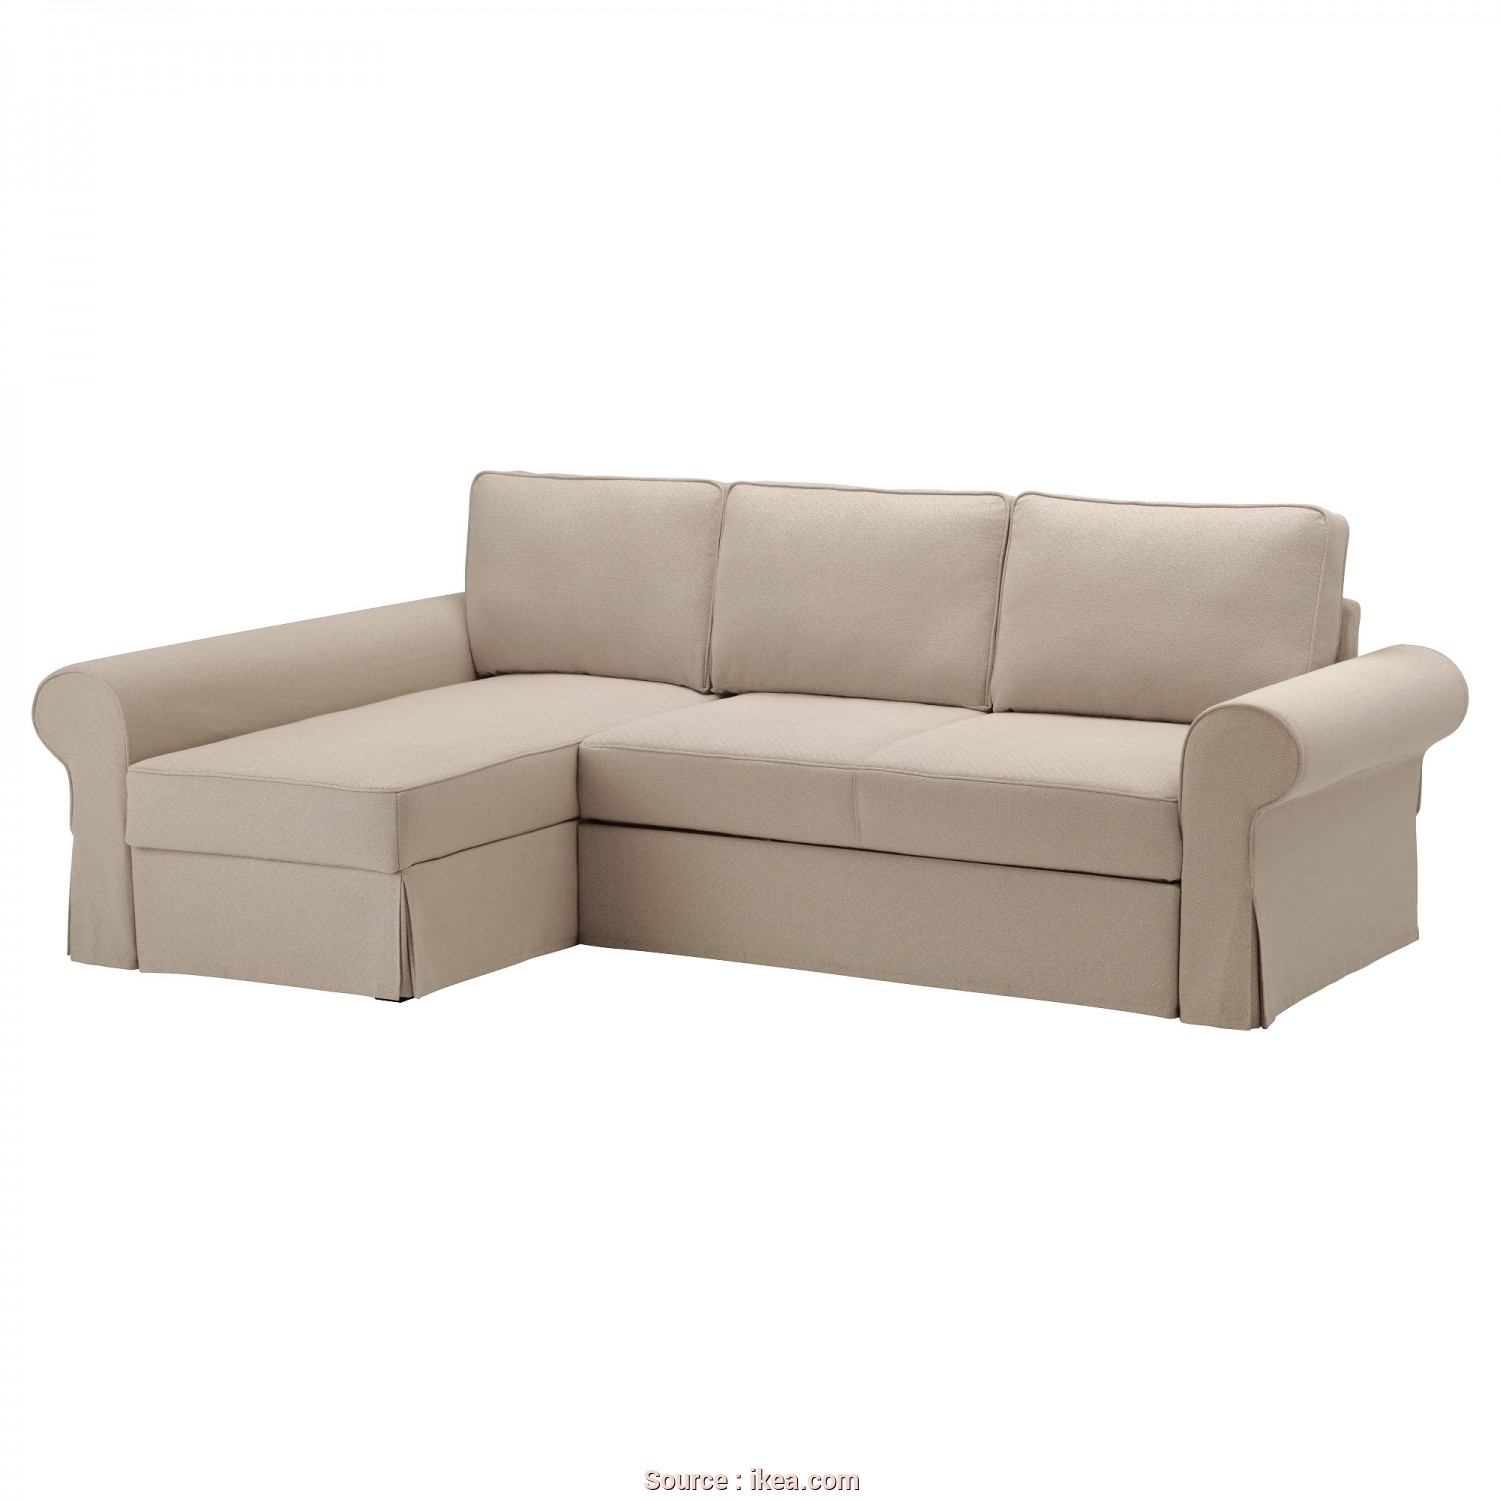 Backabro Ikea Cover, Fantasia BACKABRO Cover Sofa-Bed With Chaise Longue Hylte Beige